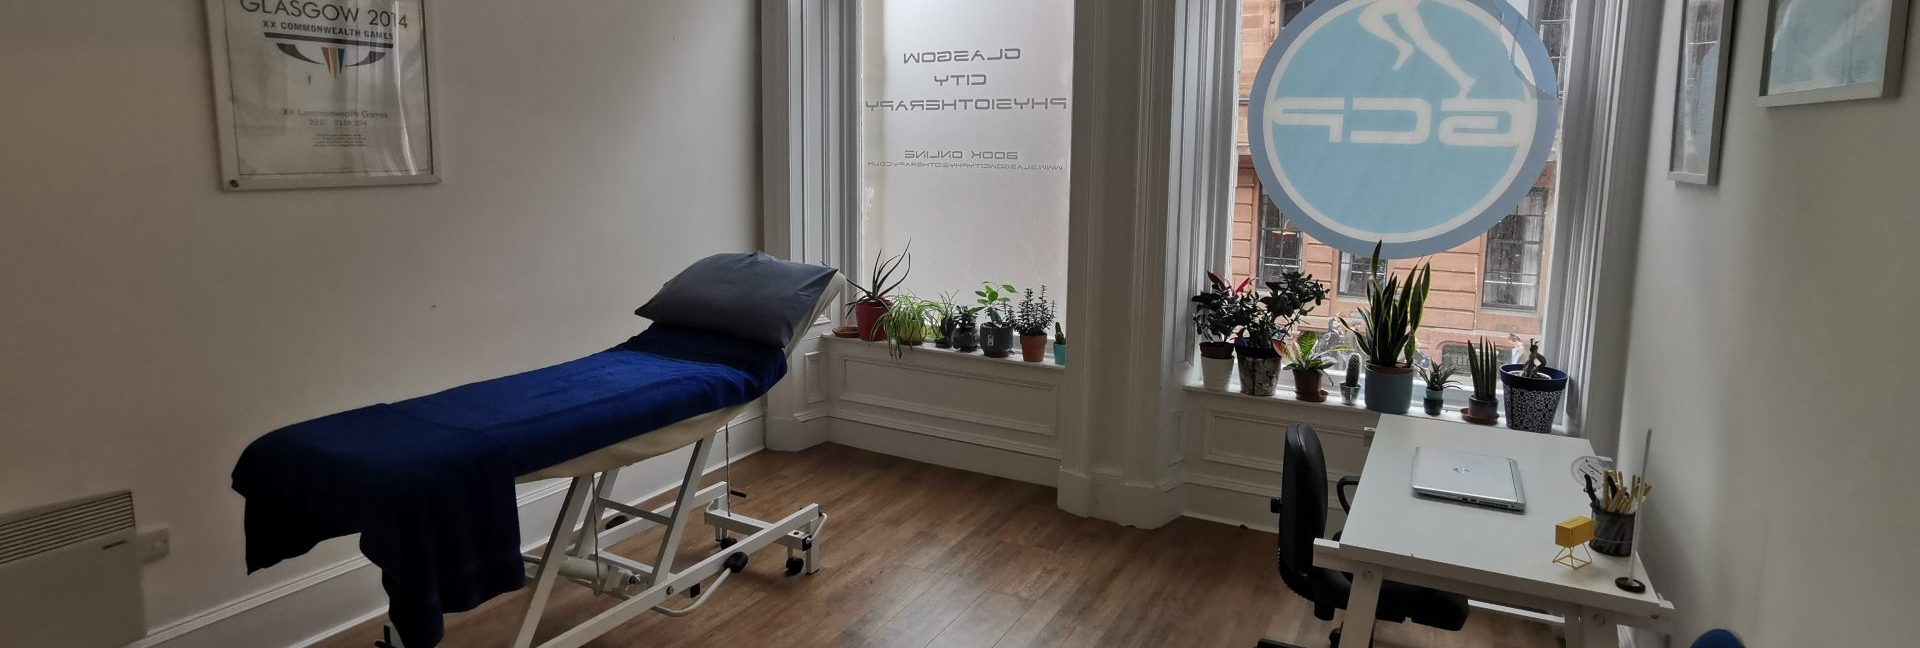 Glasgow City Physiotherapy